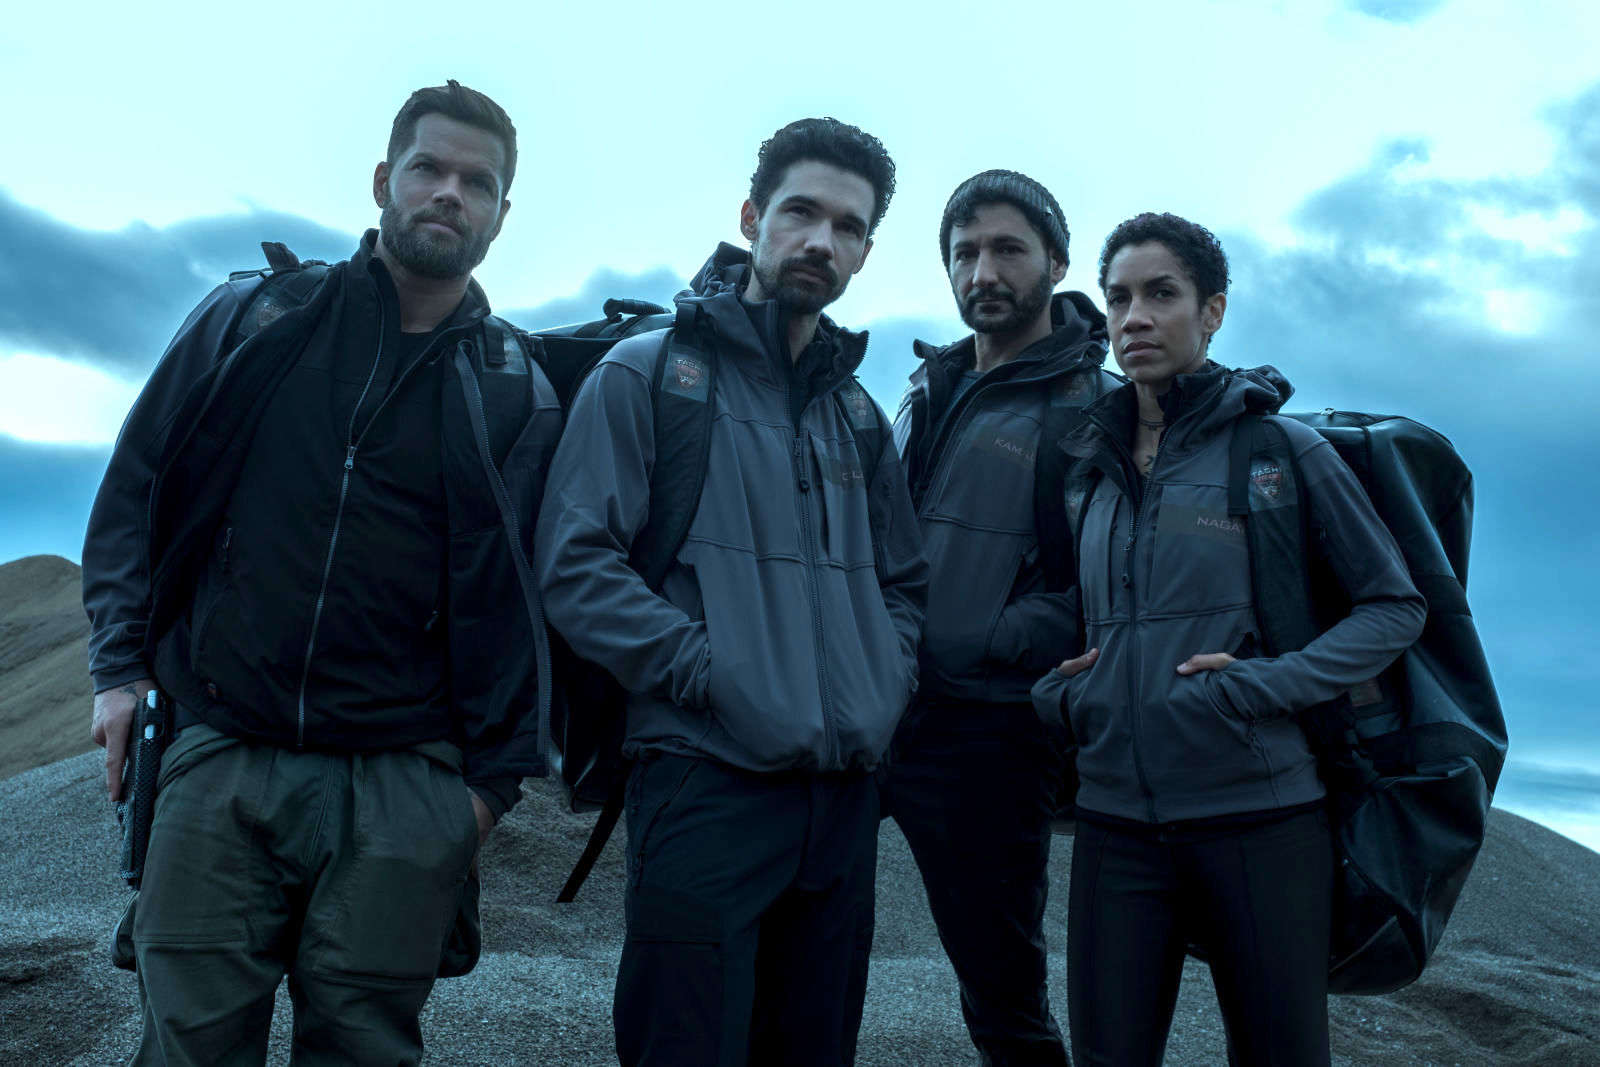 The crew of the Roci are on a new adventure on The Expanse